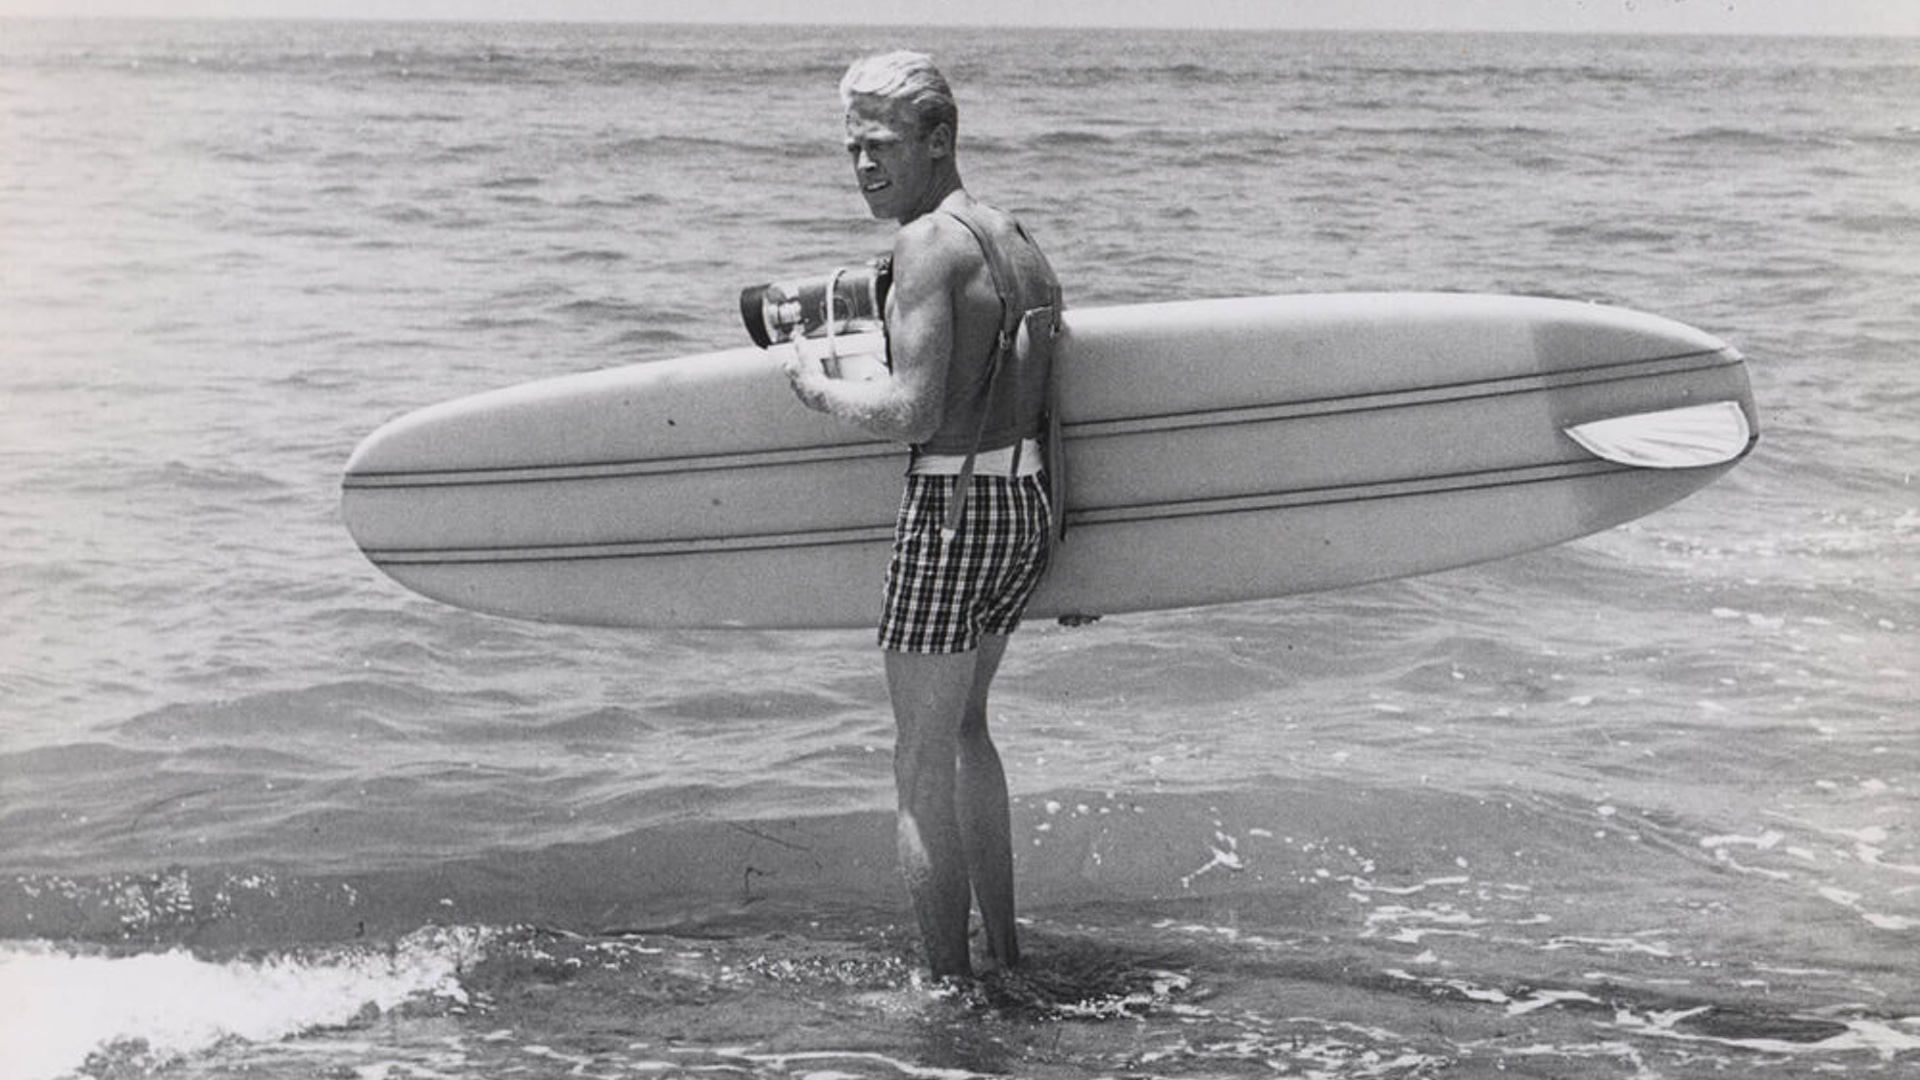 For Those Of You Not Familiar With Documentary Filmmaker Bruce Brown He Is The Man Who Brought Us Legendary Surfing Film Endless Summer 1966 And